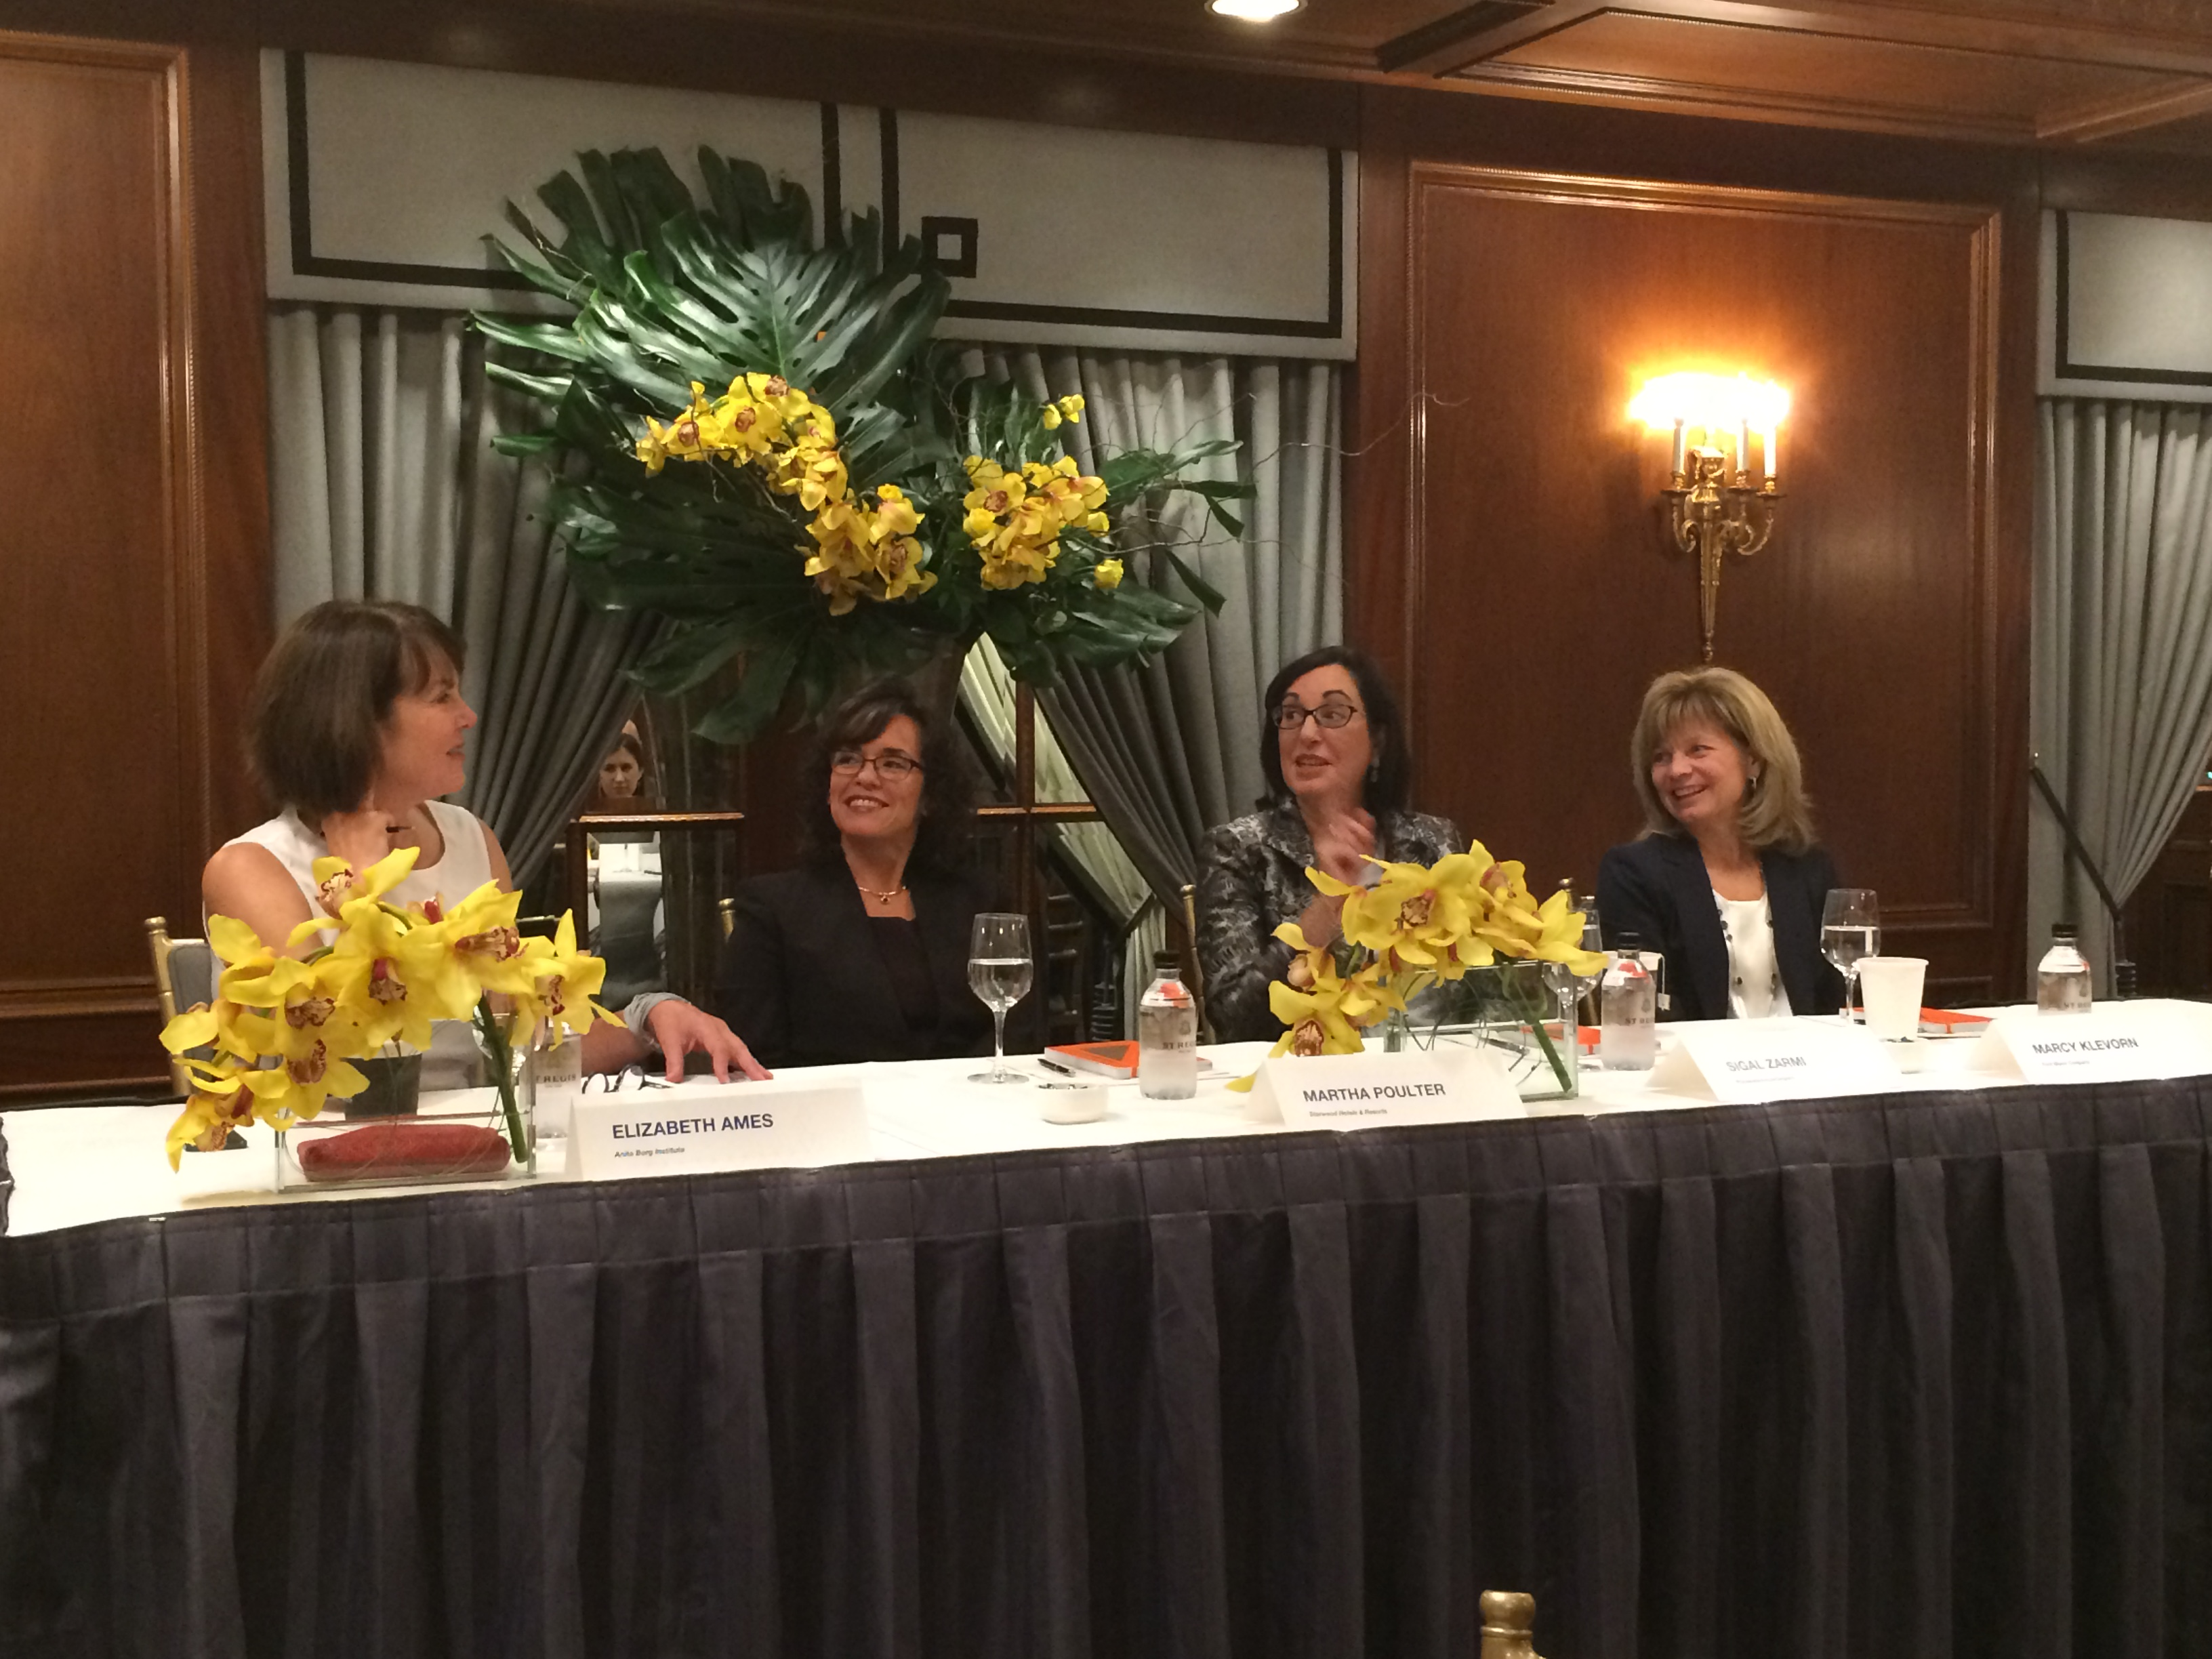 (Left to right) Elizabeth Ames, Anita Borg Institute; Martha Poulter, Starwood Hotels; Sigal Zarmi, PricewaterhouseCoopers; Marcy Klevorn, Ford Motor